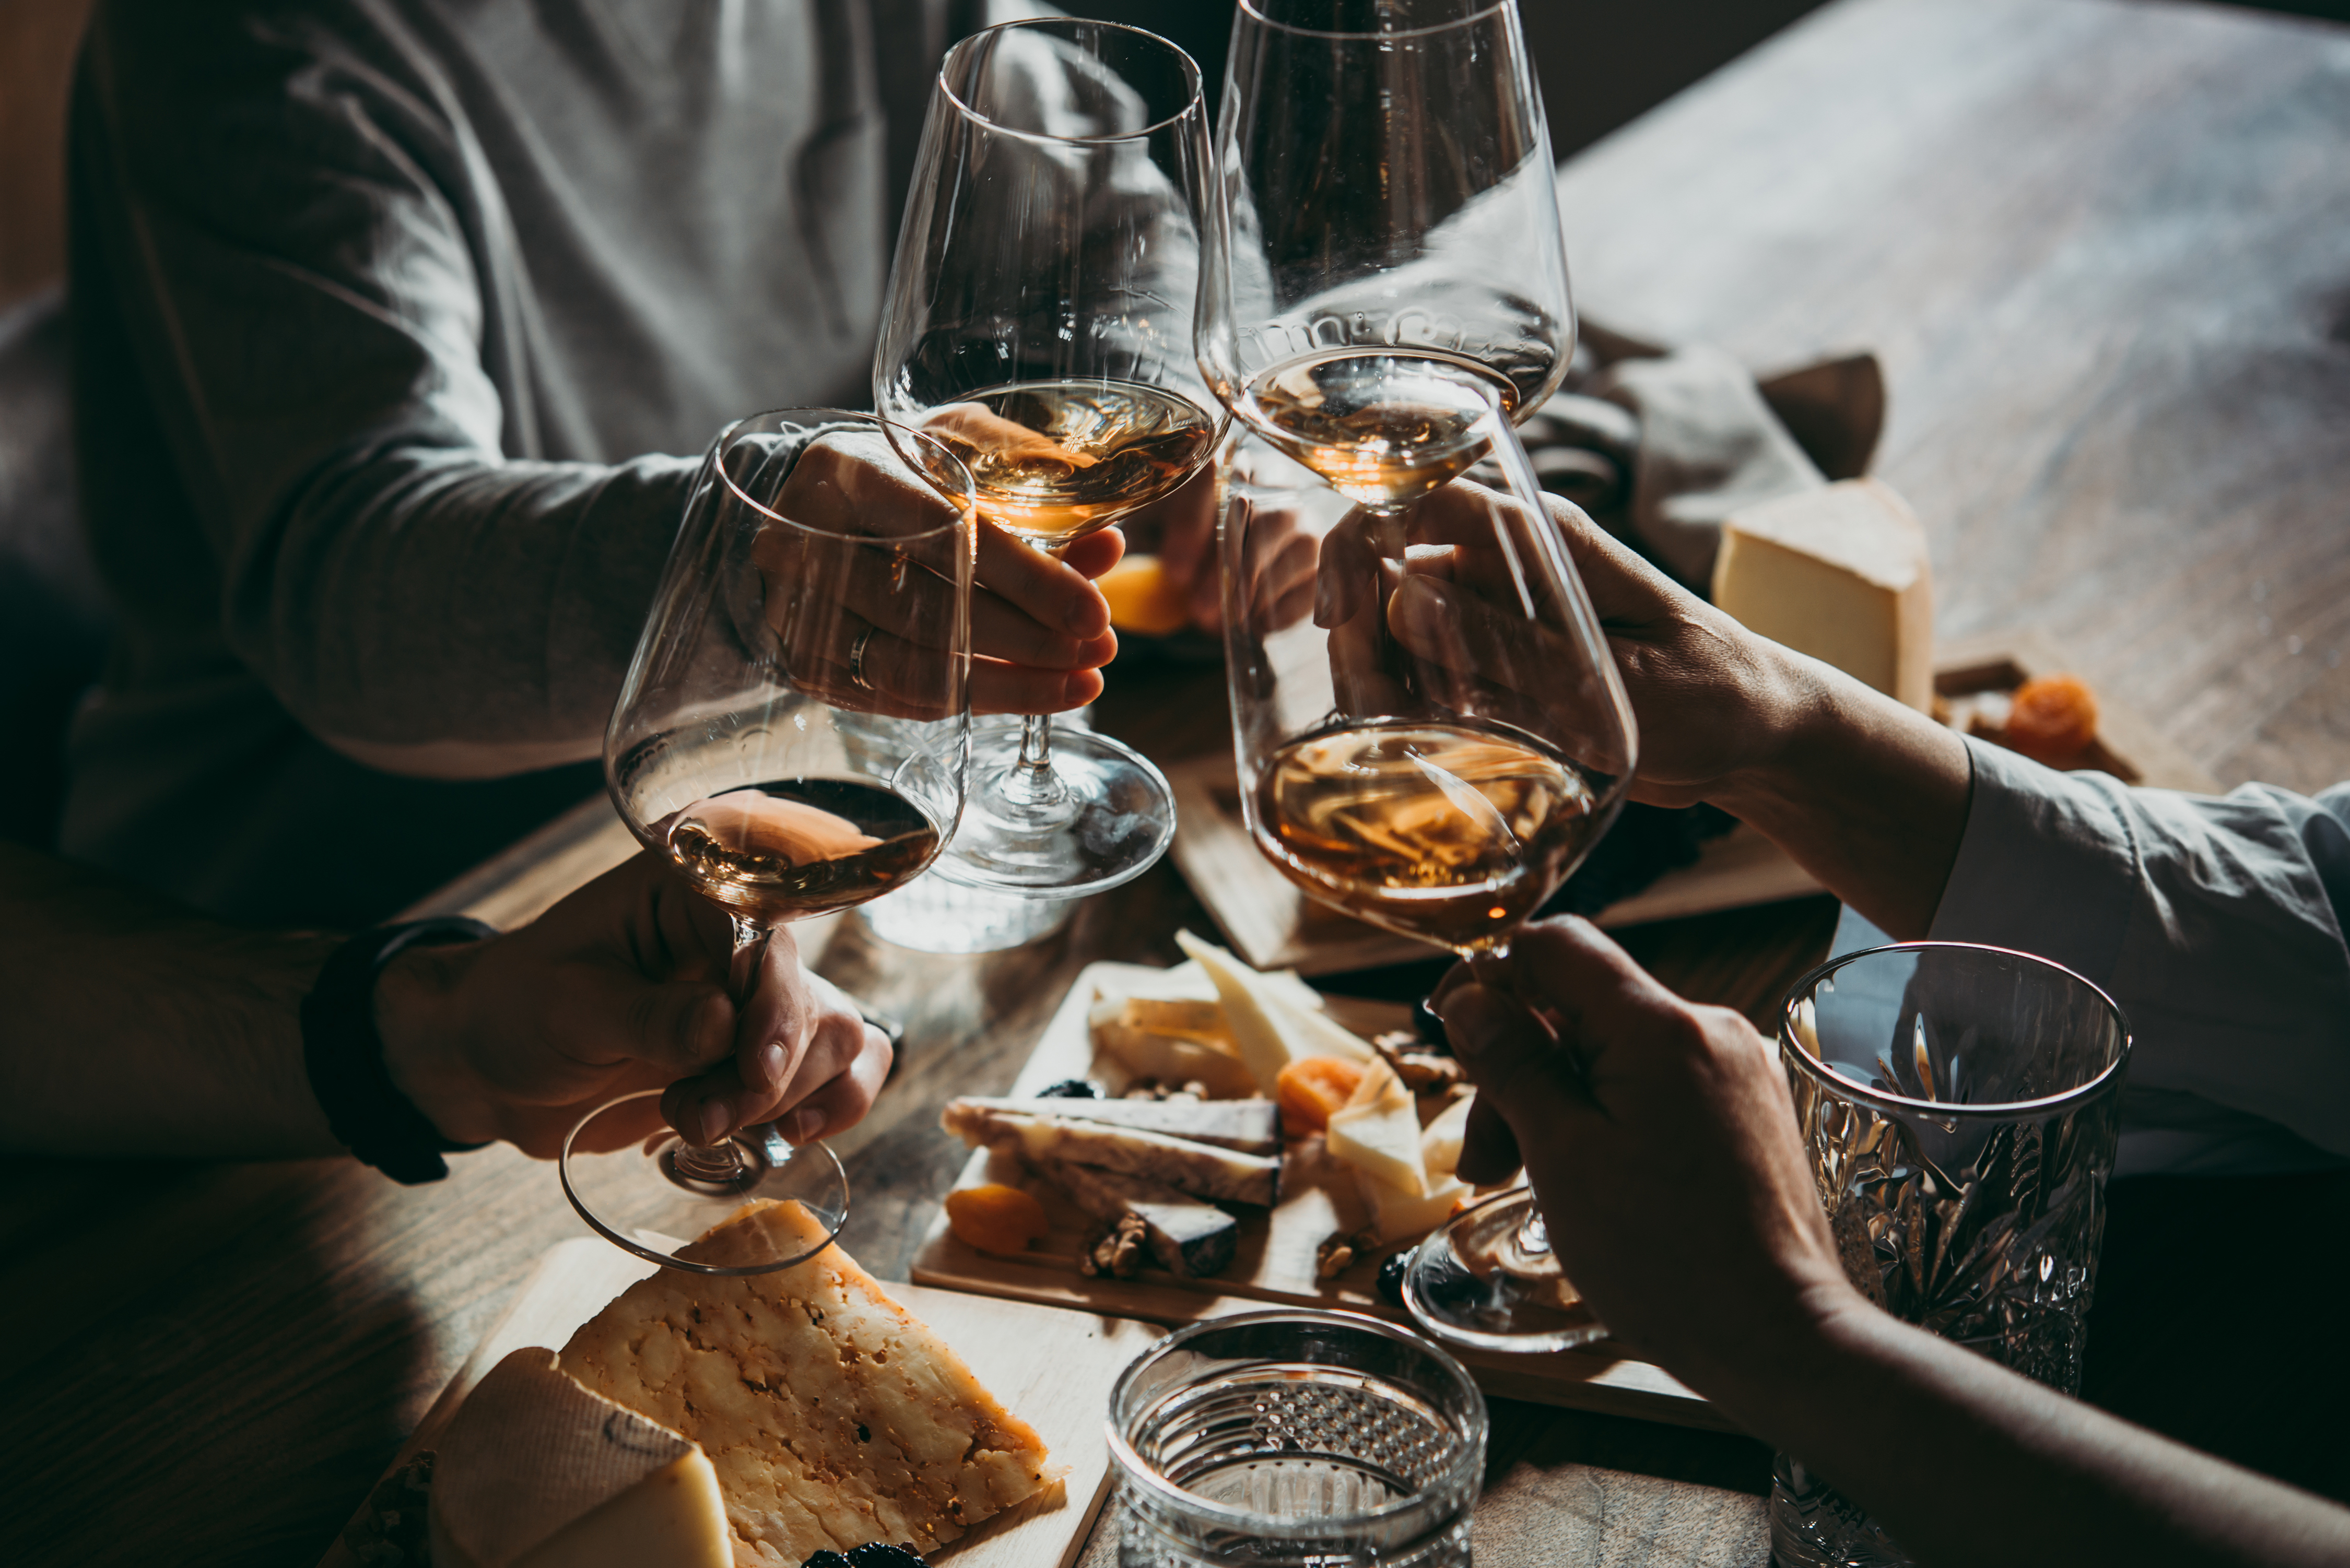 Hands clink glasses of wine together over a spread of meats and cheese.